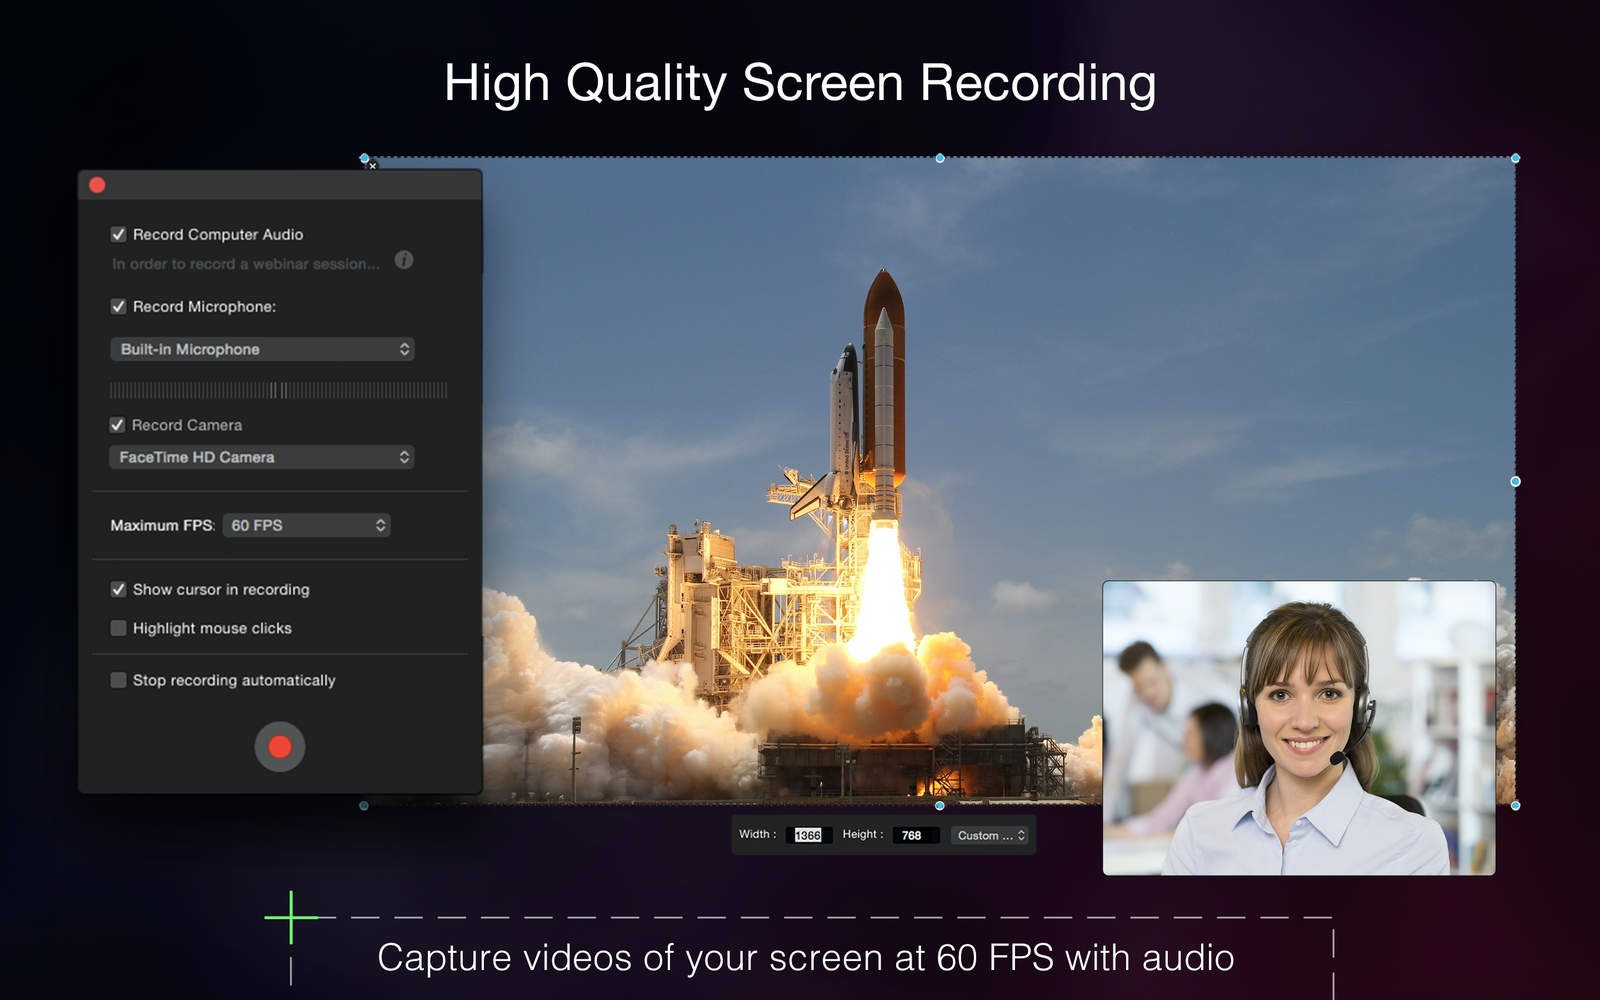 HQ screen recording. Capture videos of your screen at 60 FPS with audio.